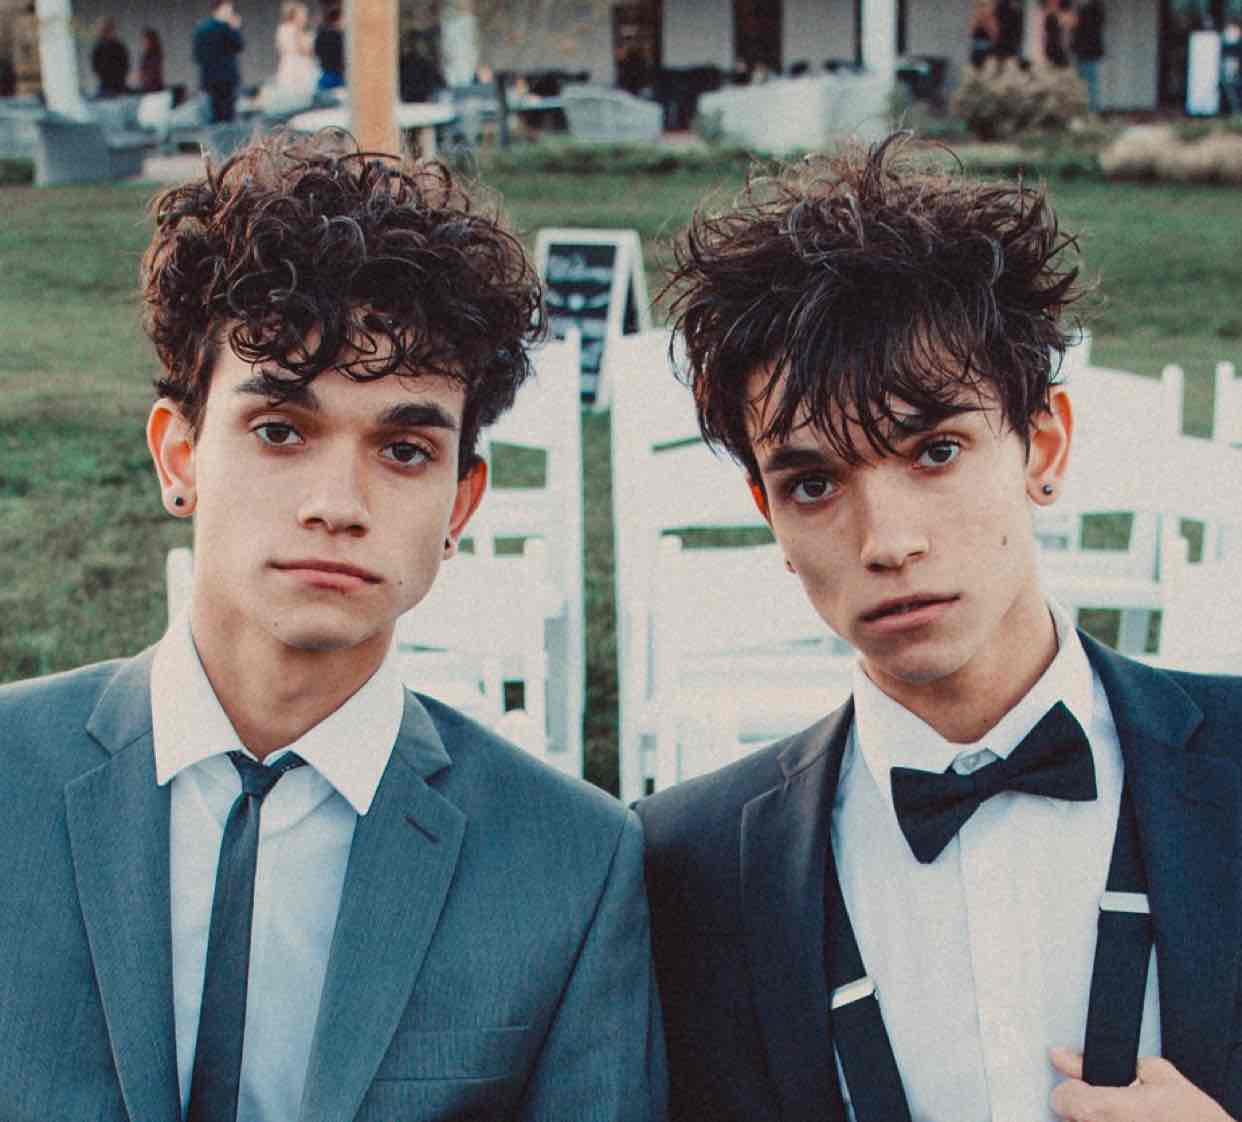 Avatar of Lucas and Marcus